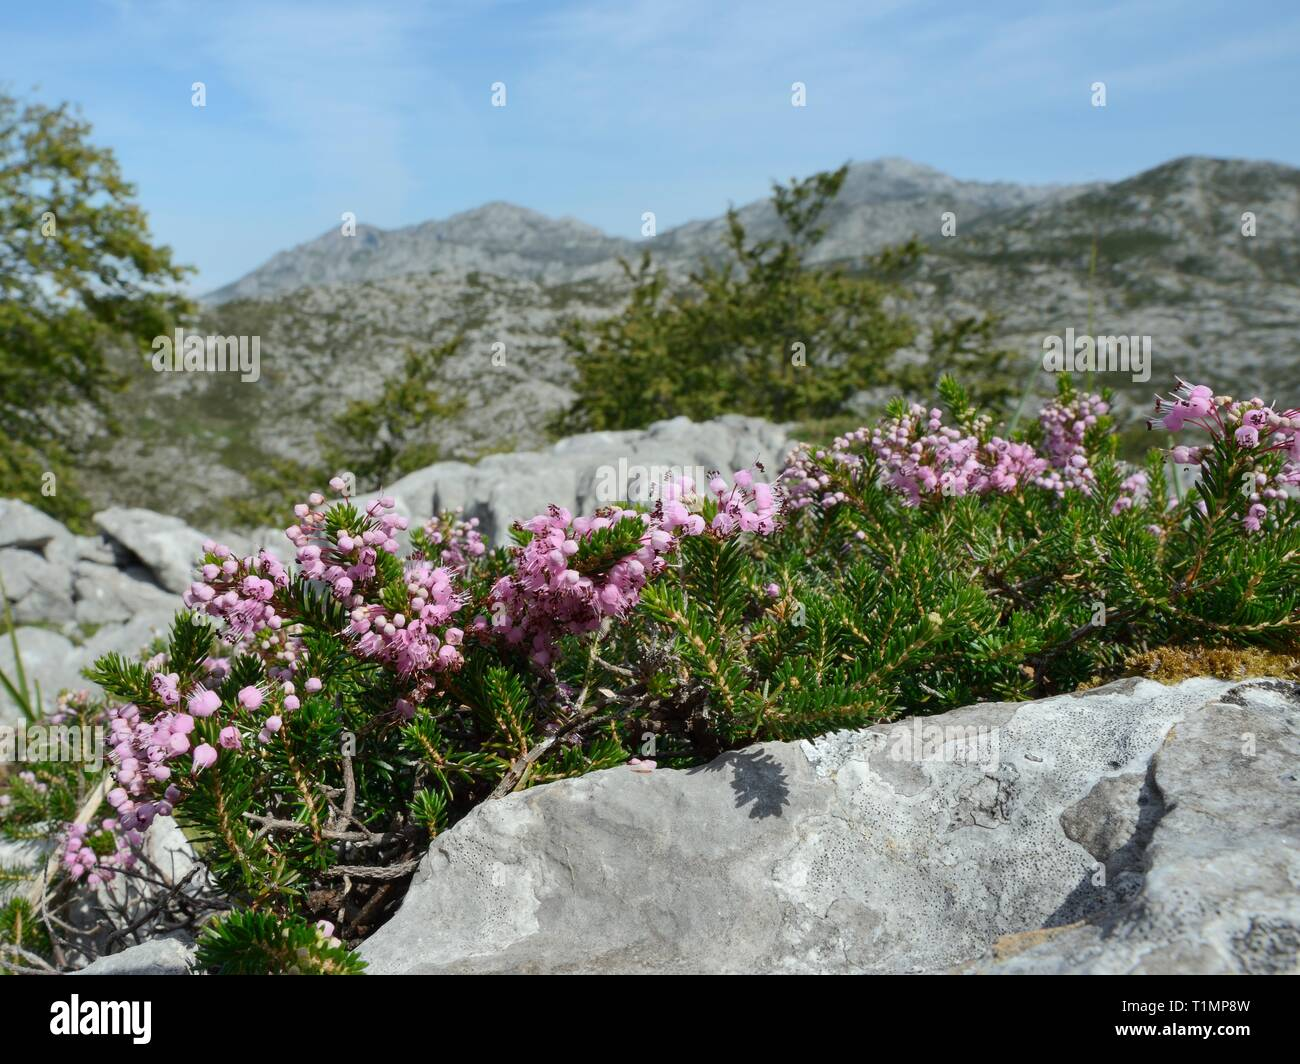 Cornish heath (Erica vagans) clump flowering among limestone rocks on montane pastureland, Picos de Europa, Asturias, Spain. - Stock Image